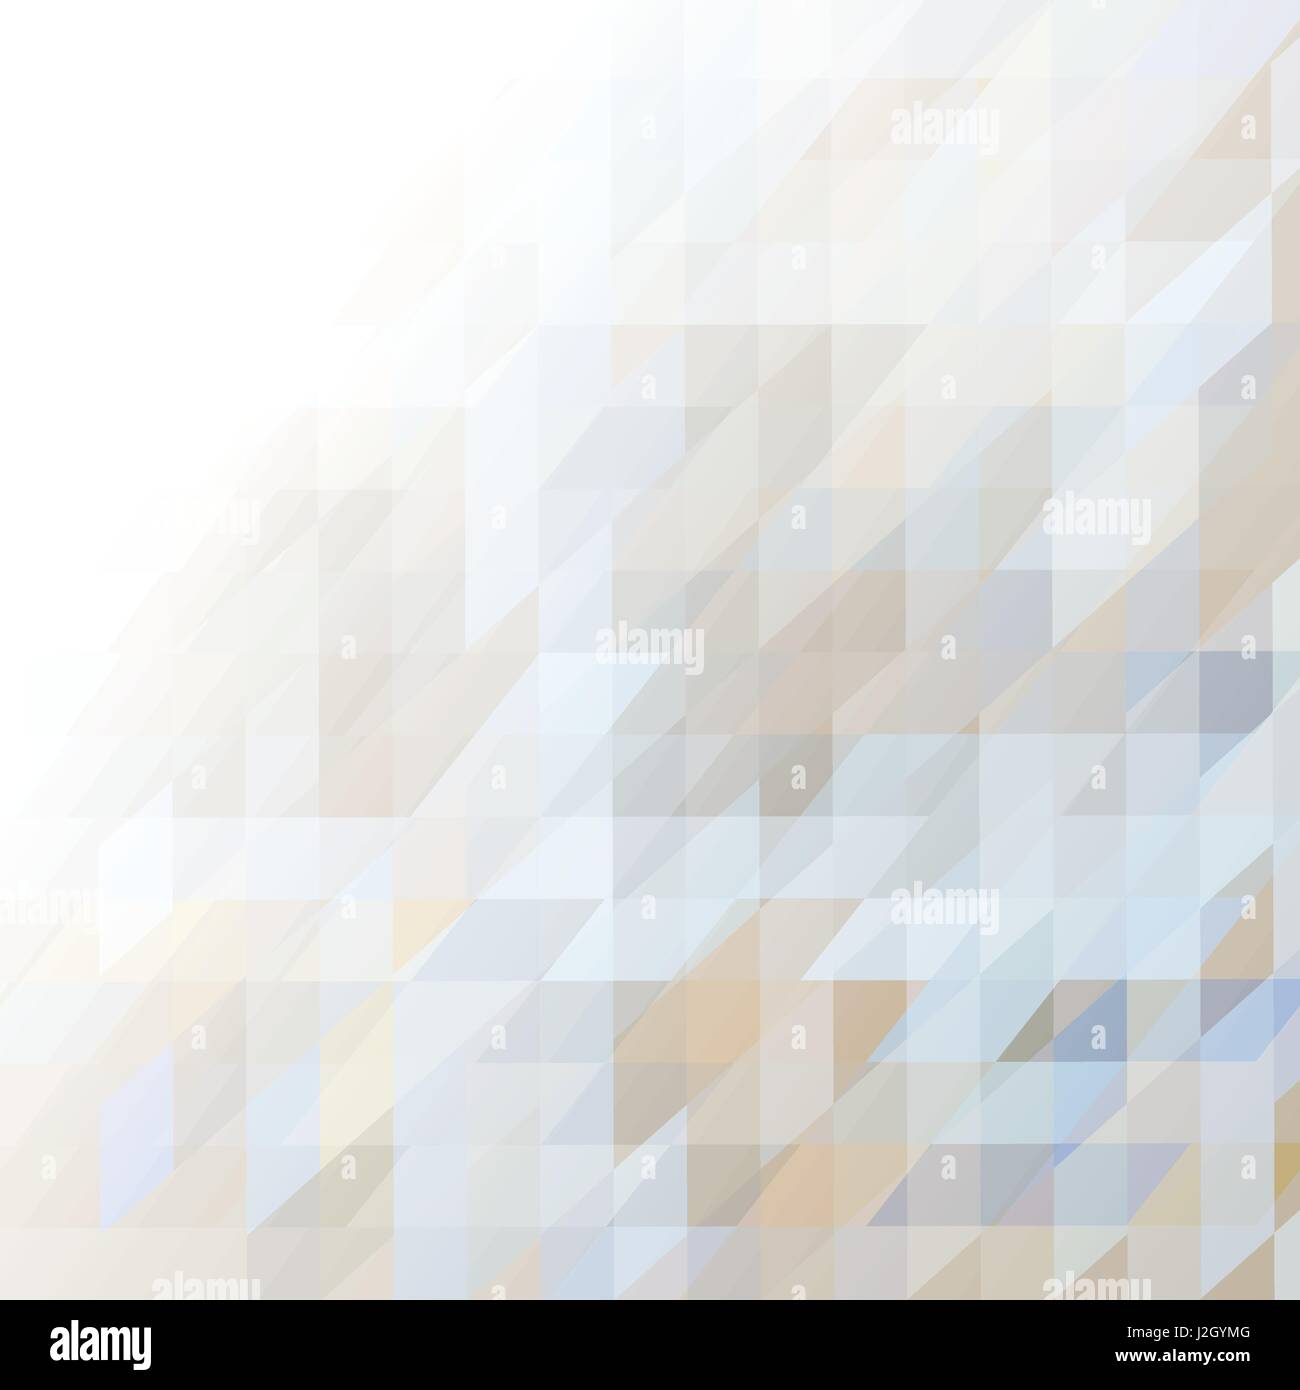 Abstract background in light colors. - Stock Image